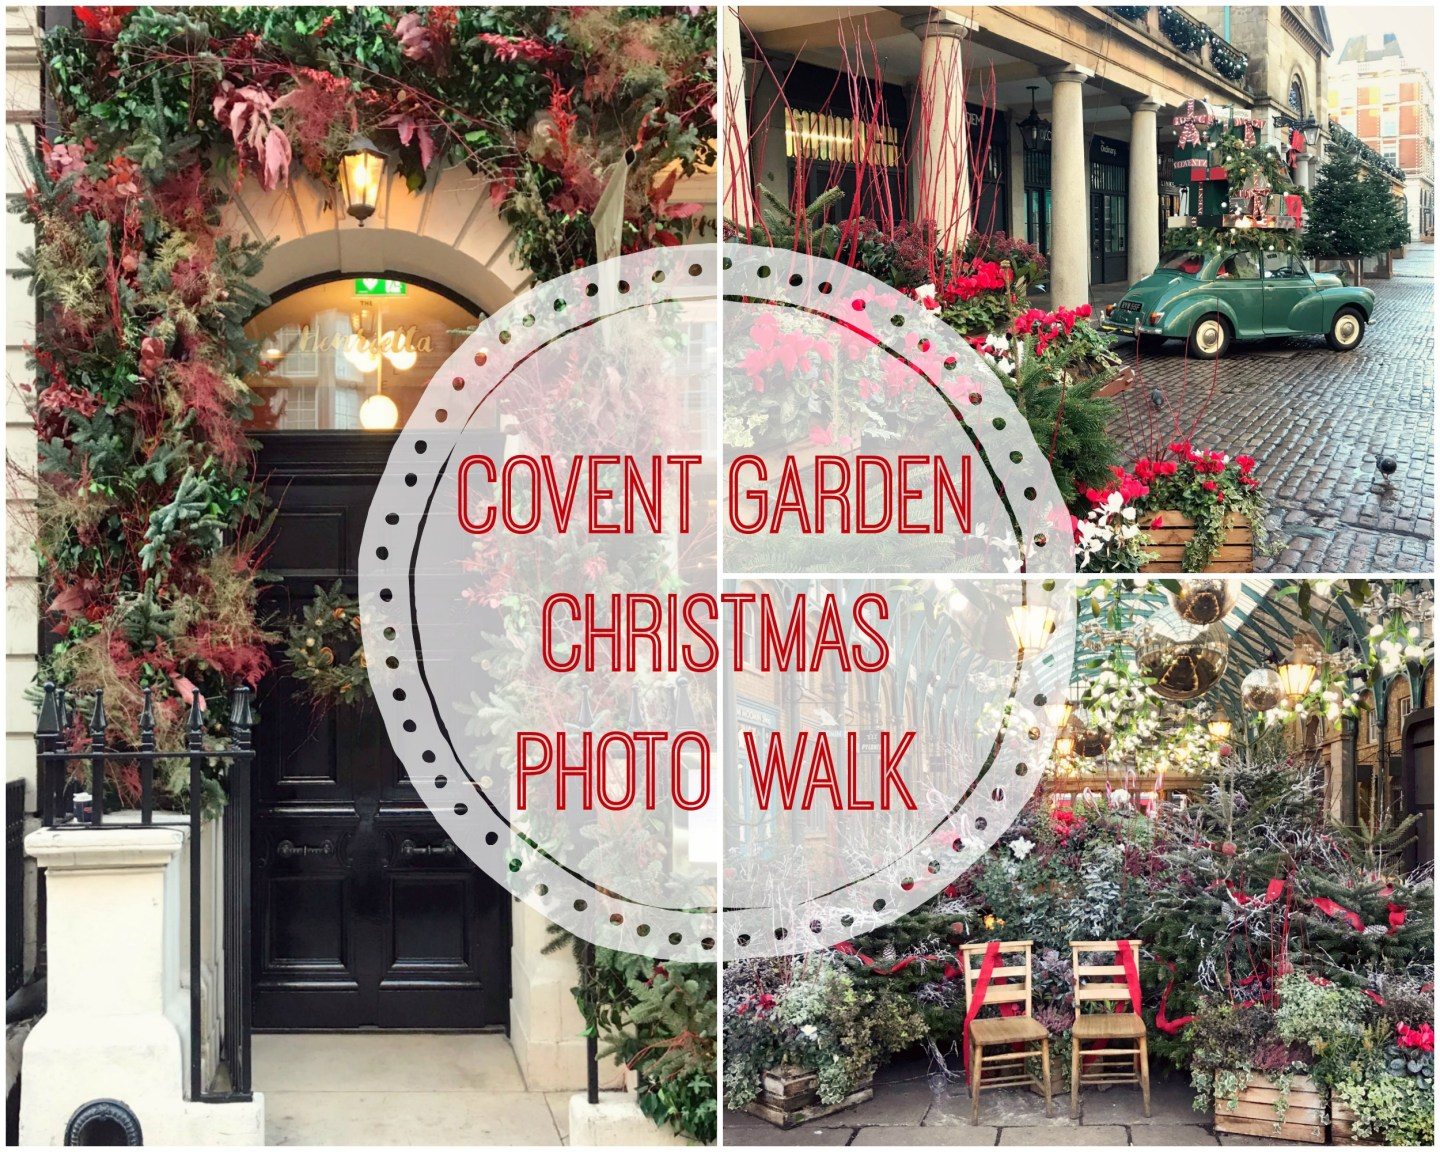 Covent Garden Christmas Photo Walk – Where to Get Those Festive Instagram Snaps!